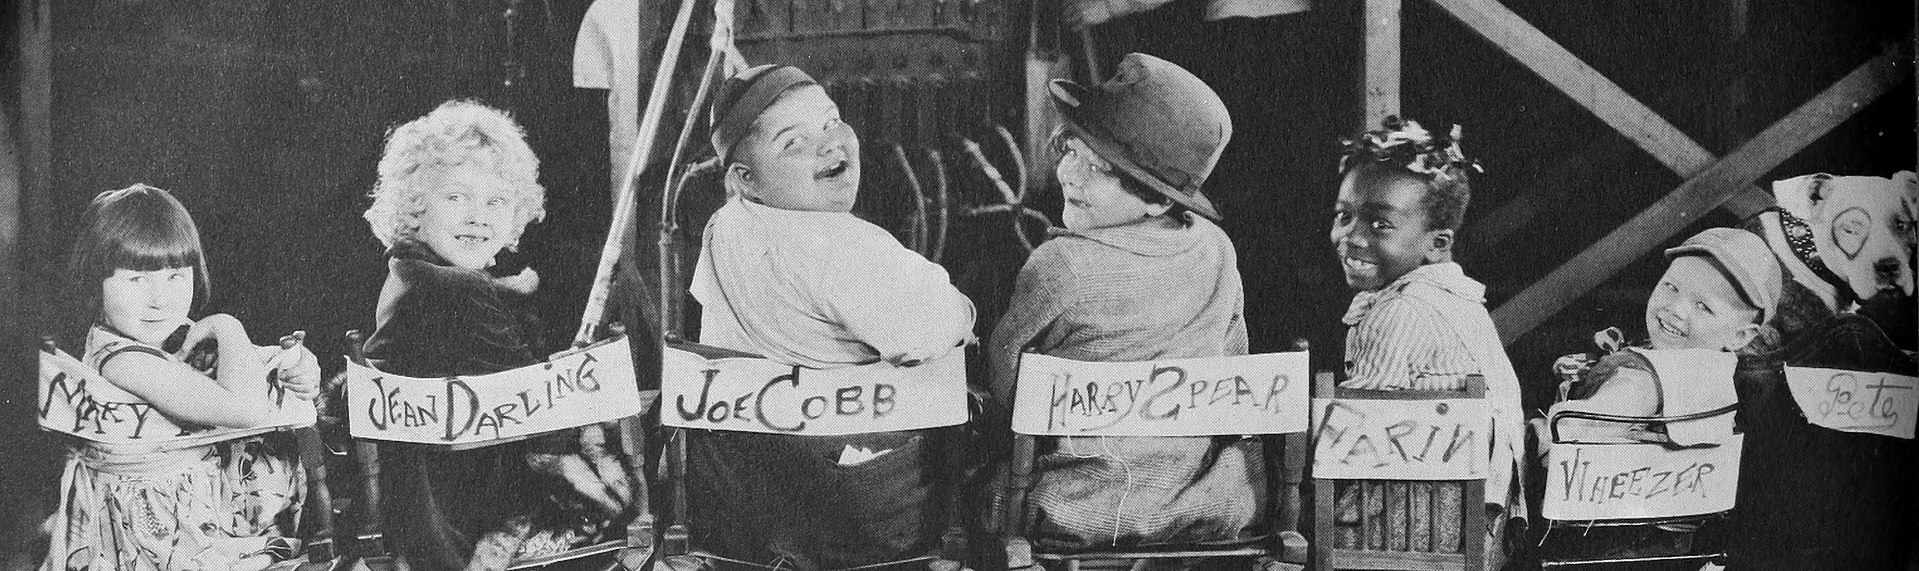 Our Gang - A Pictorial History of the Silent Screen